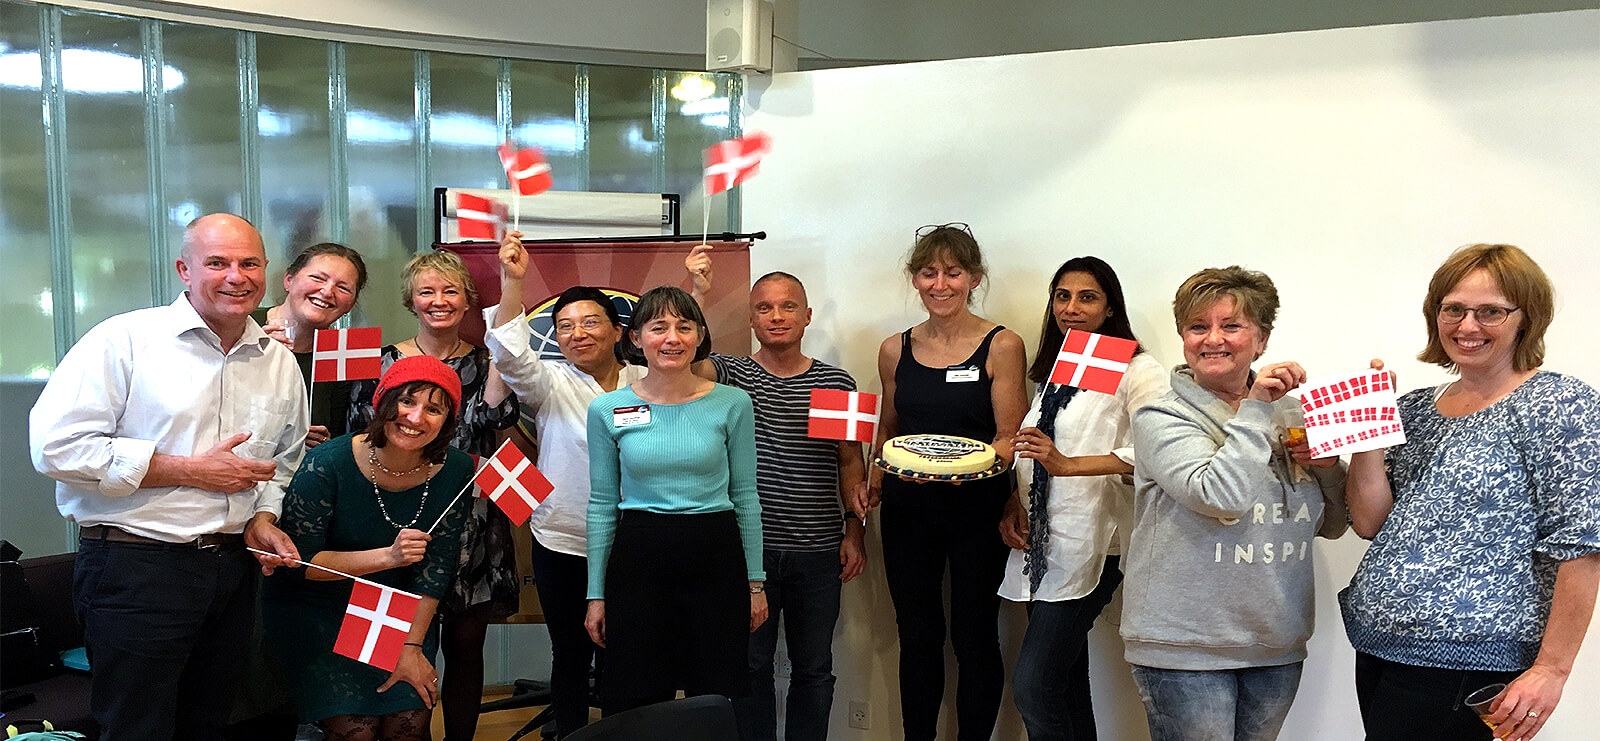 Toastmasters in Fredensborg, Denmark, celebrate the club's 6th anniversary in traditional Danish style with flags and cake.